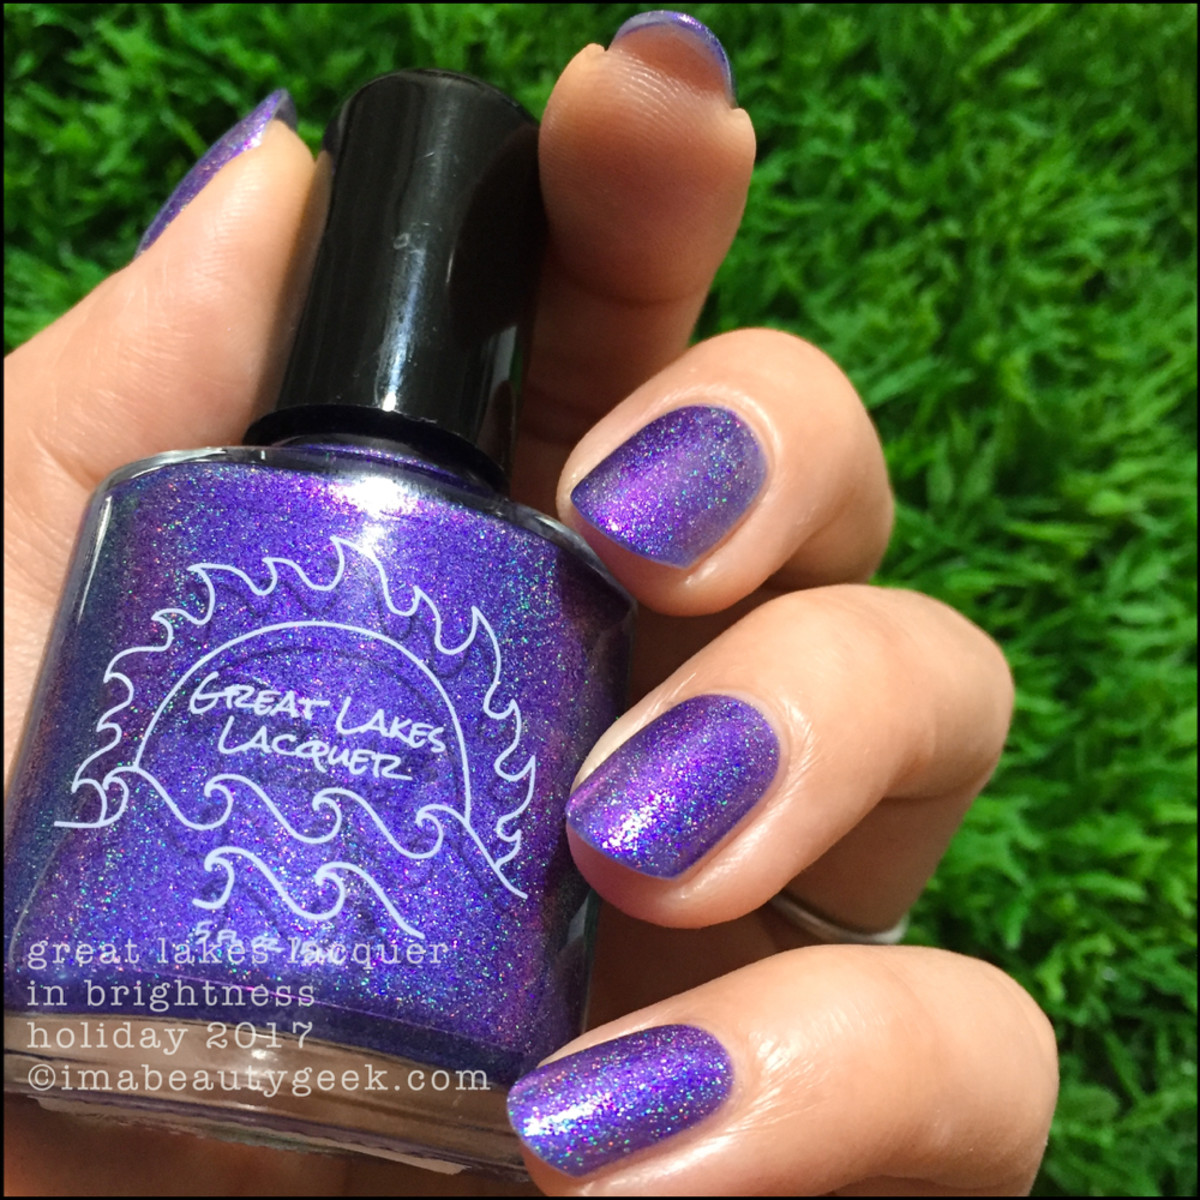 Great Lakes Lacquer In Brightness 2 _ Great Lakes Lacquer Holiday 2017